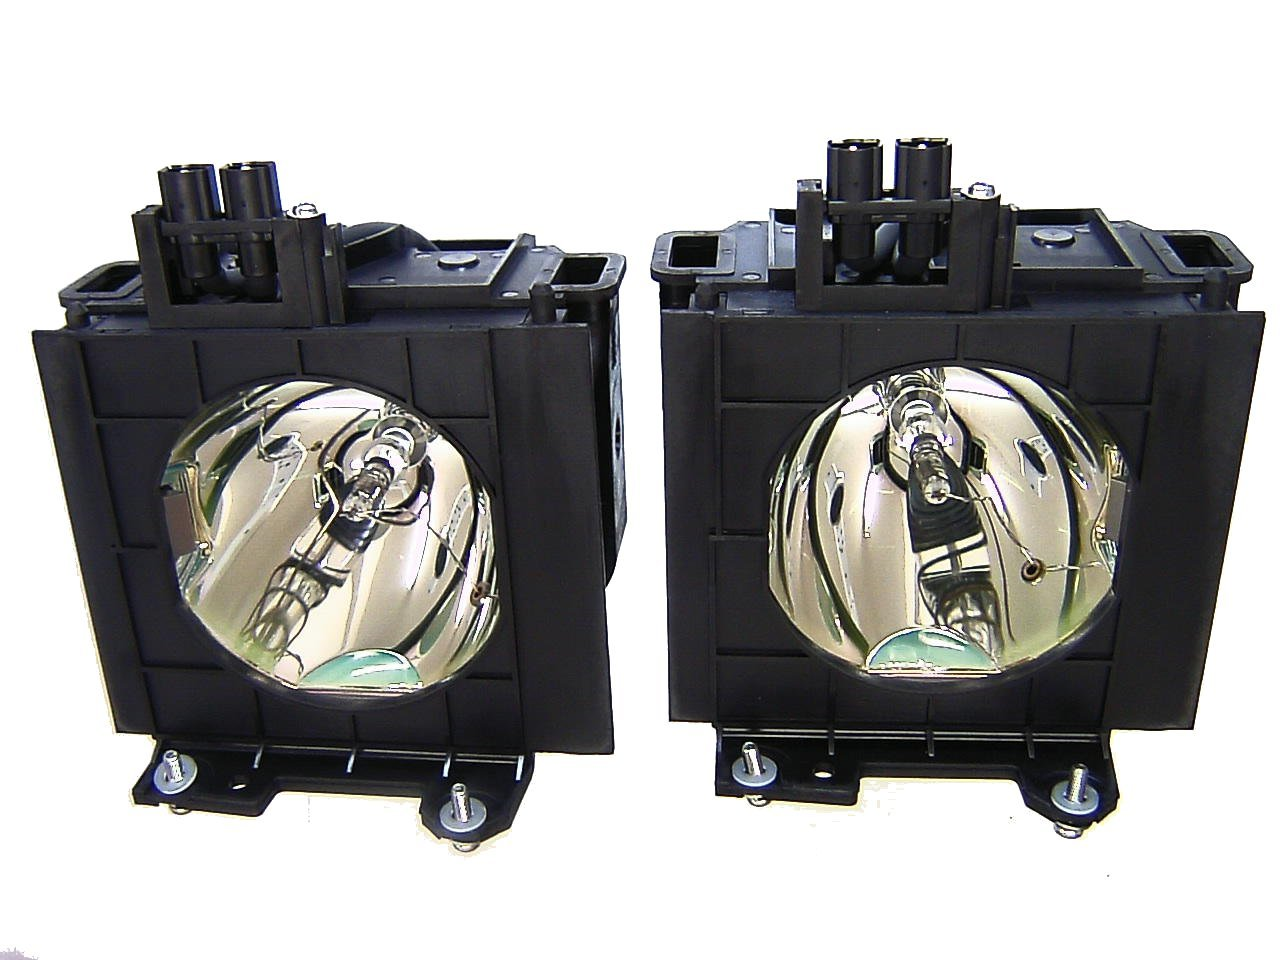 V7 VPL1111-1N Lamp for select Panasonic projectors